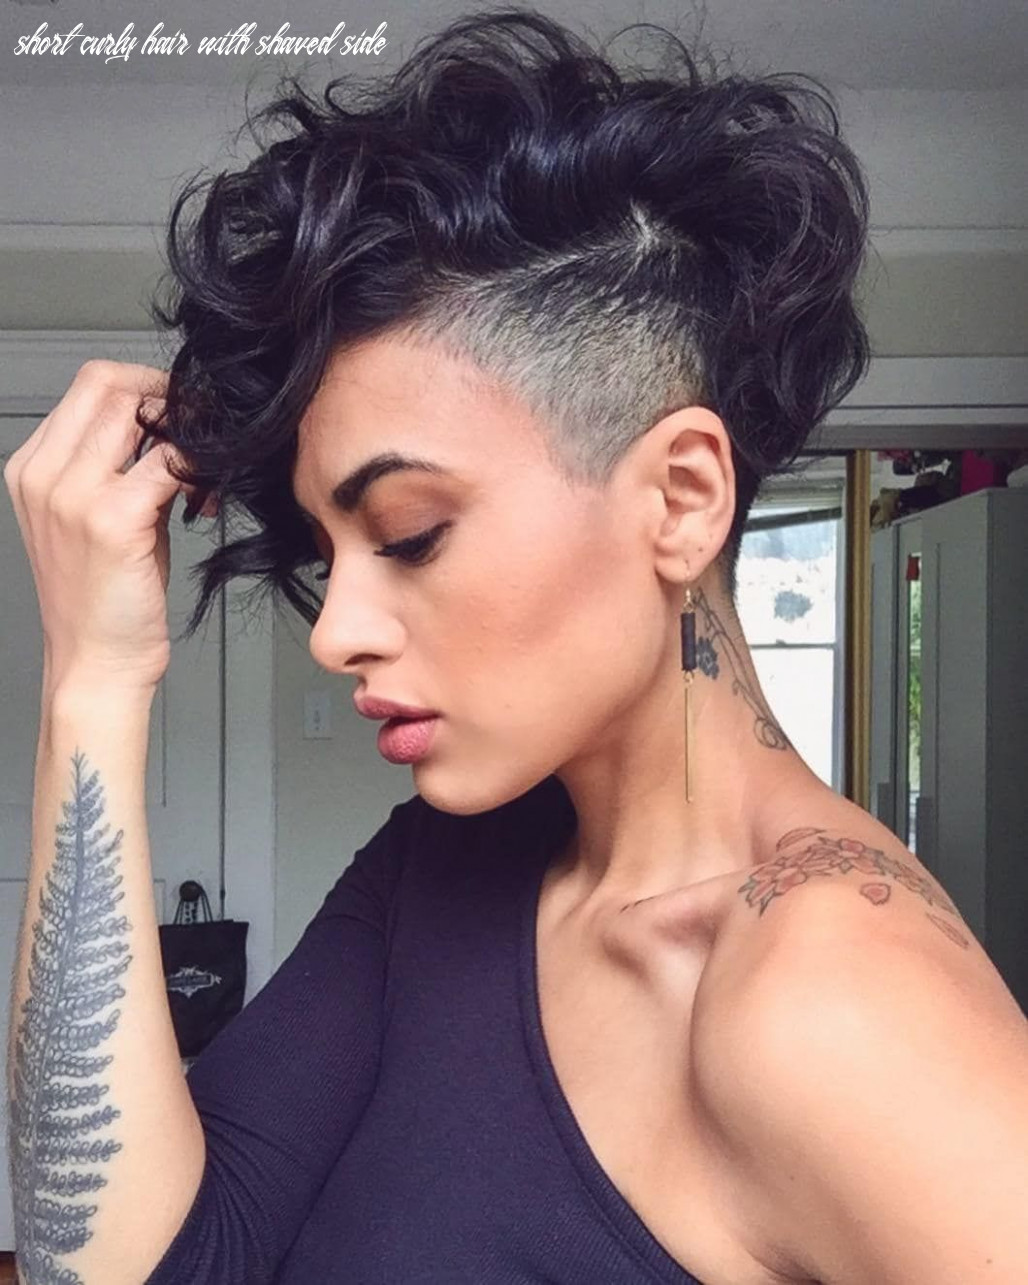 Pin on haircuts short curly hair with shaved side